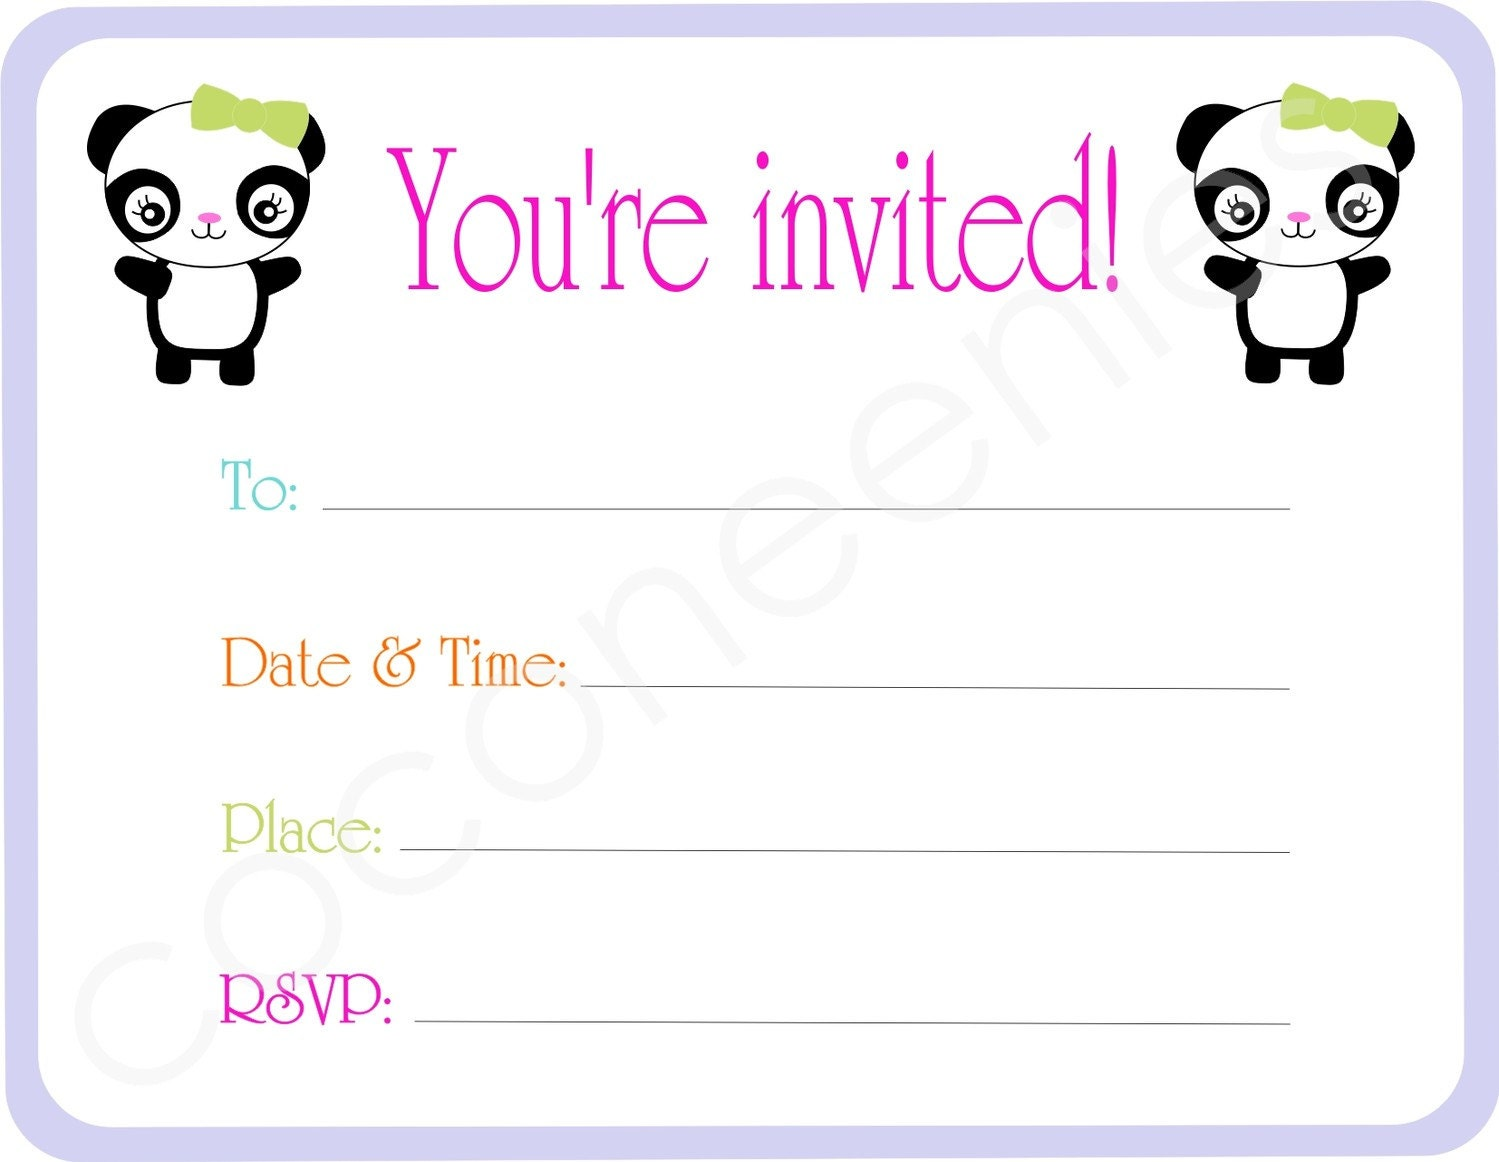 Blank Party Invitations is an amazing ideas you had to choose for invitation design